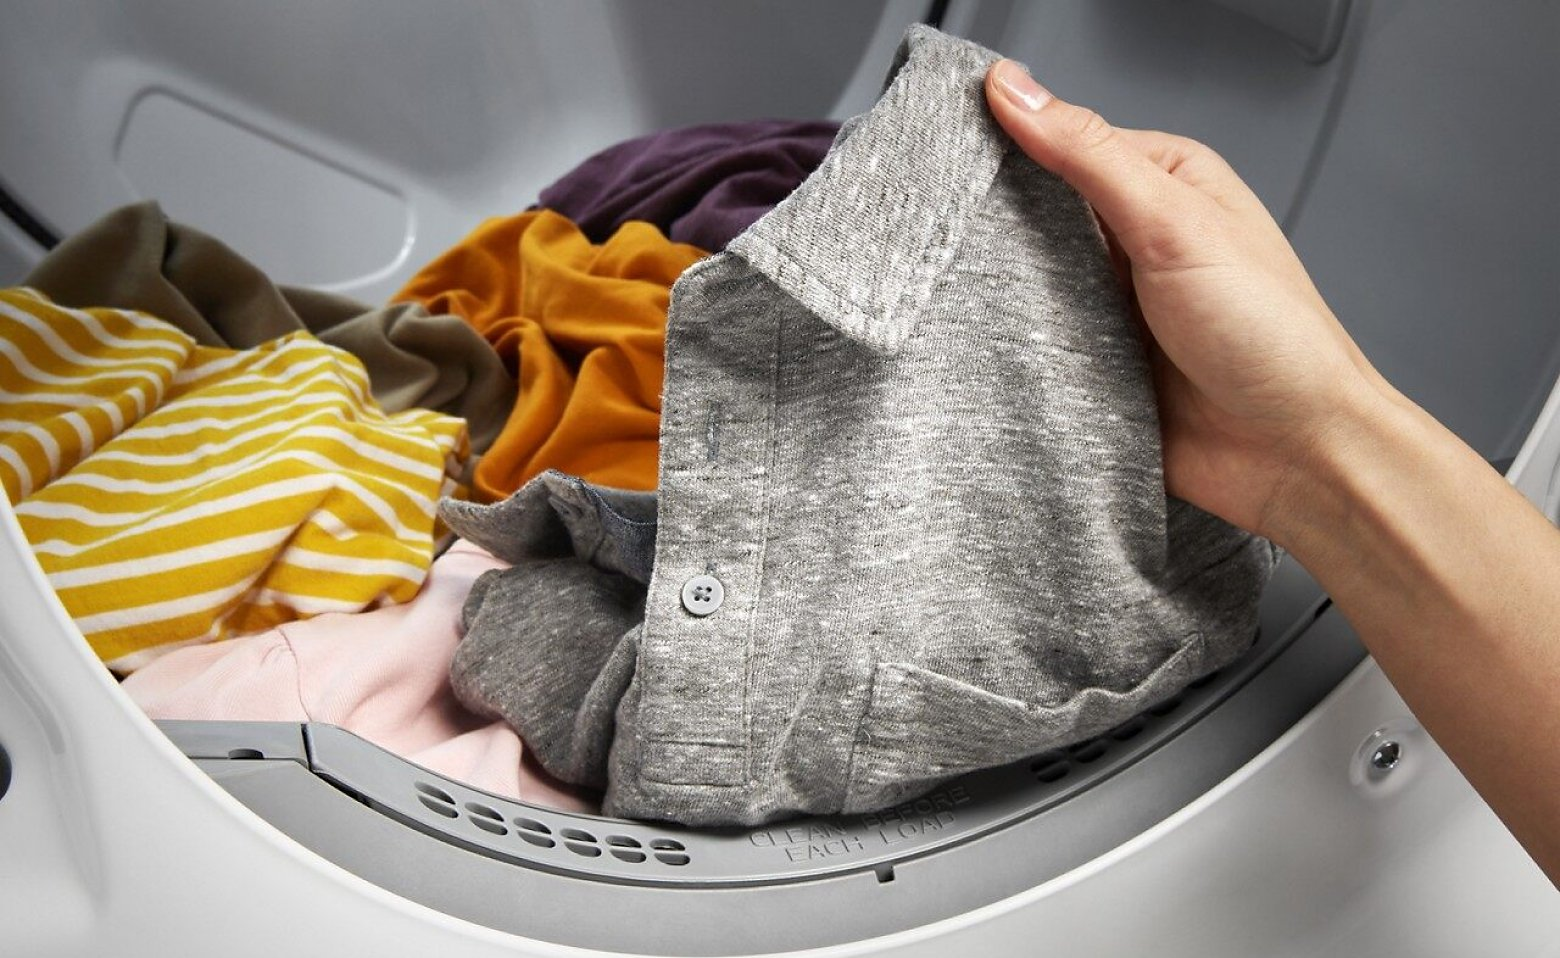 Hand removing clothes from the dryer